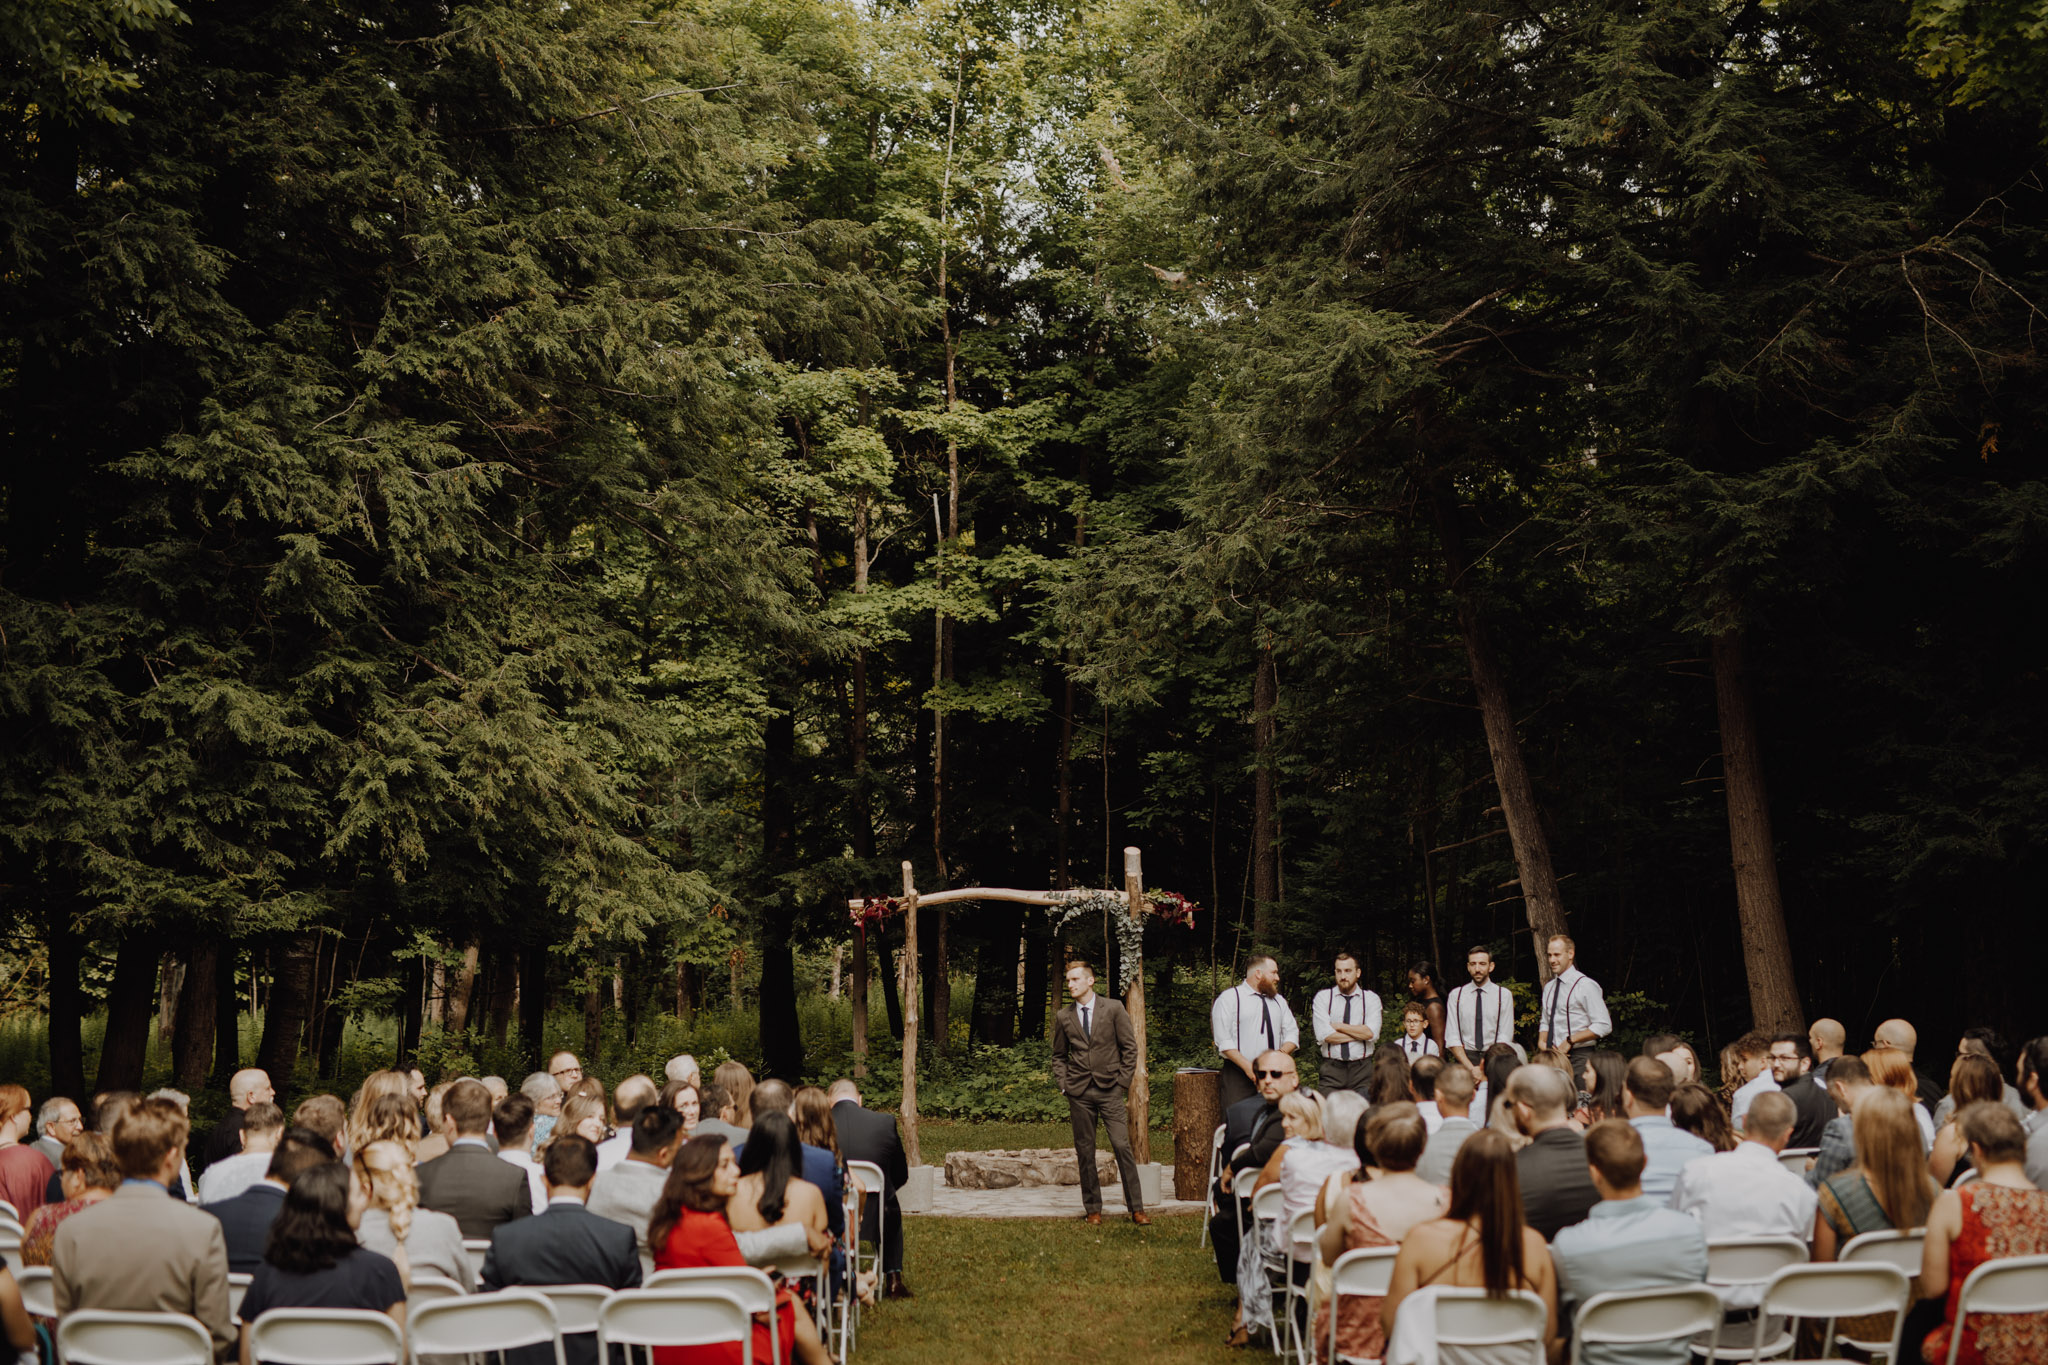 Outdoor Camp Wedding - the ceremony